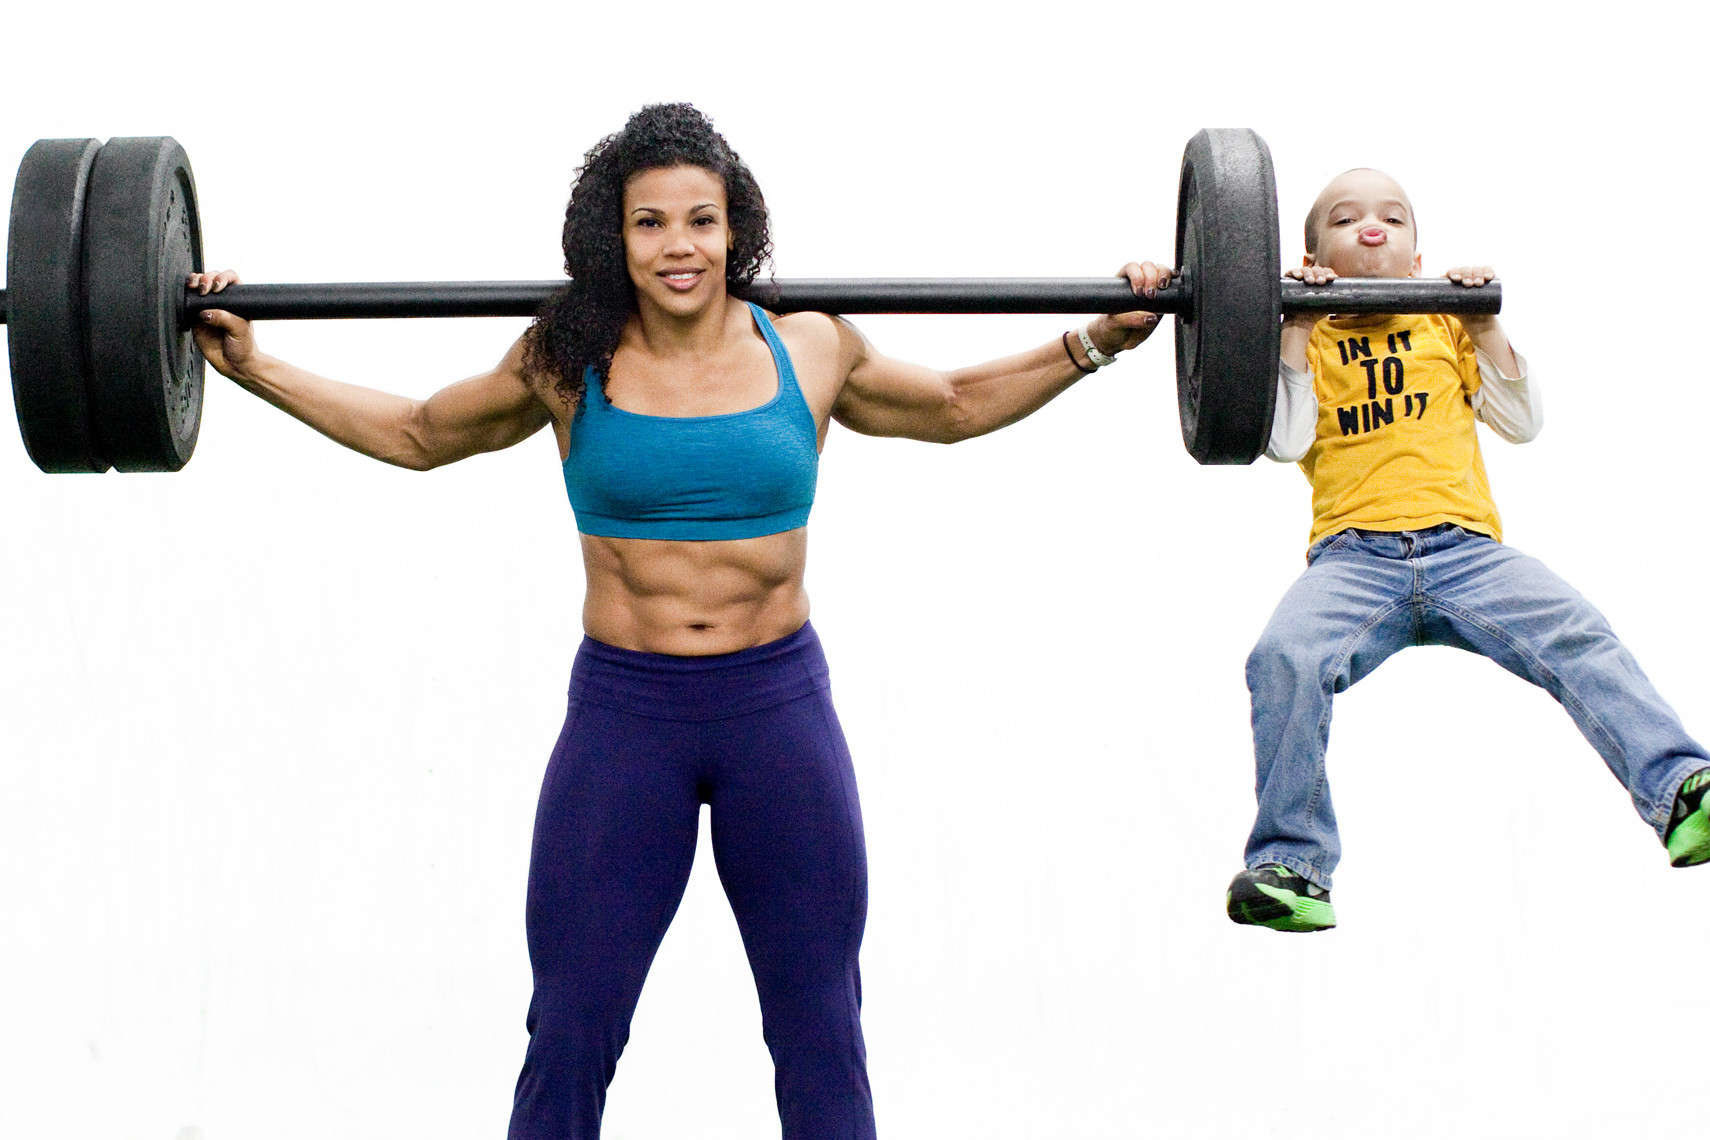 Los Angeles Sports Photography, Michael Brian, female, mother, Elisabeth Akinwale, Reebok Crossfit Games athlete, backsquat with son hanging on bar, Chicago, Sweat RX Magazine